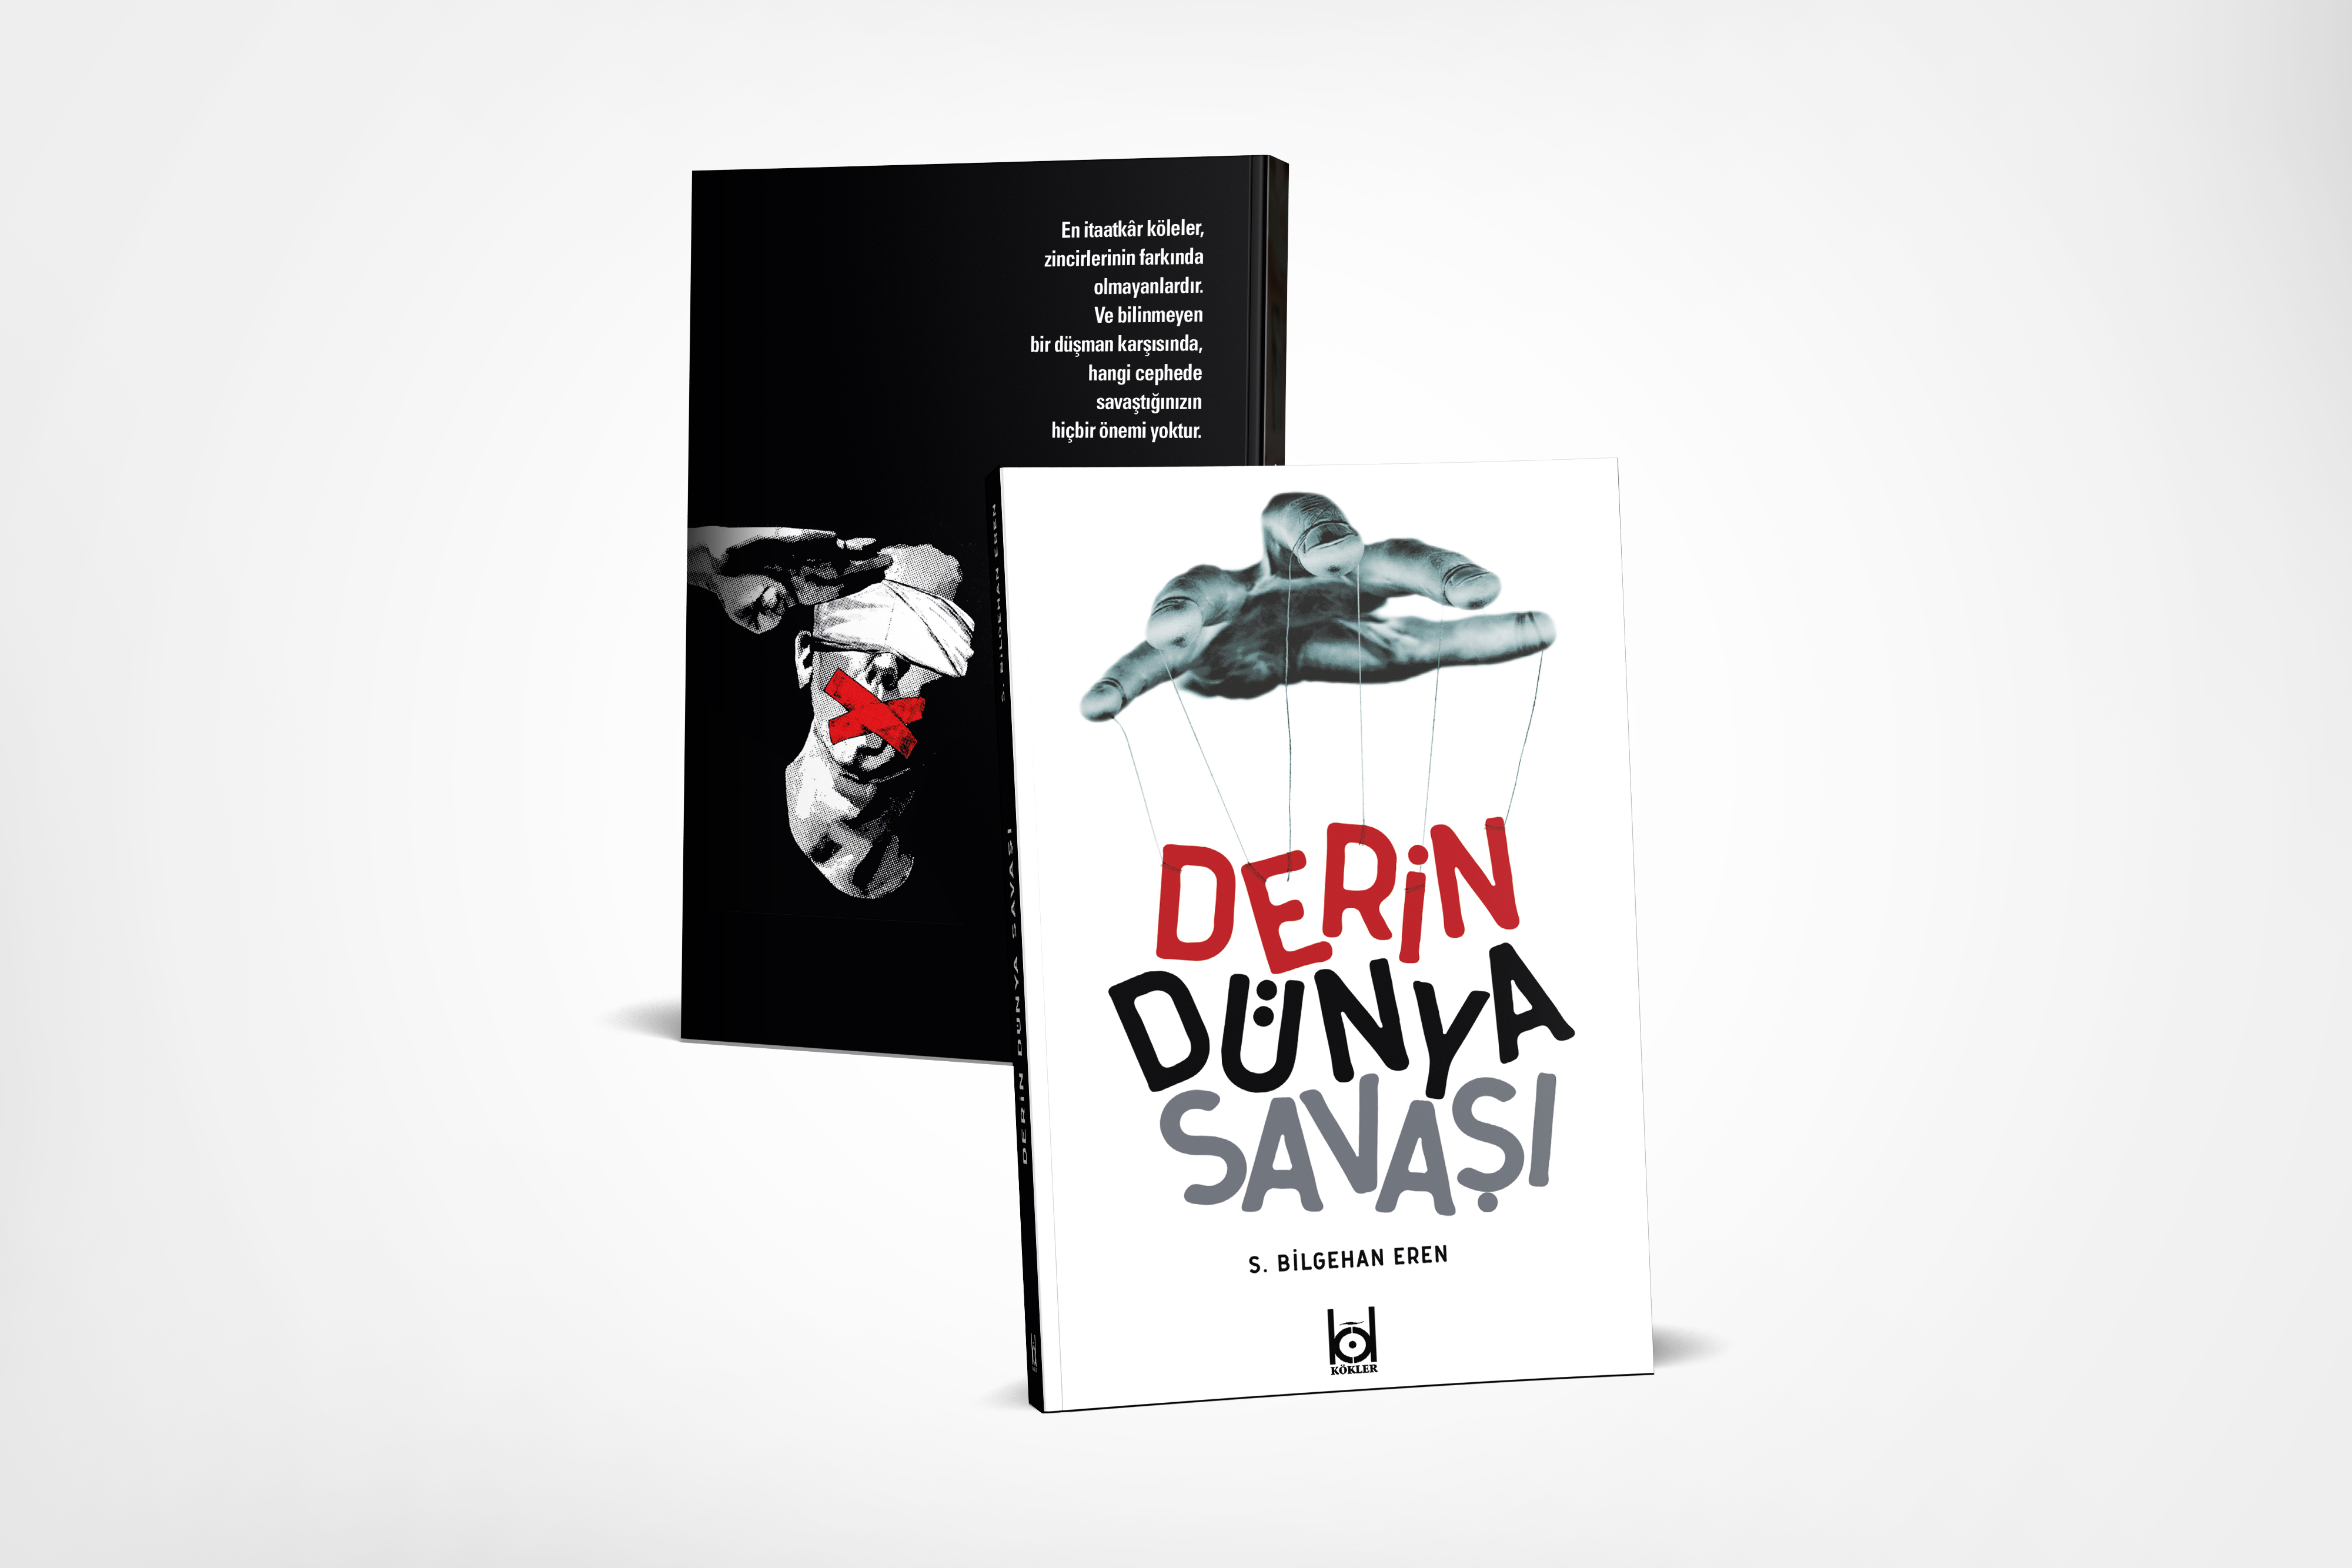 derin-dunya-savasi-(mock-up)-(2)-001.jpg